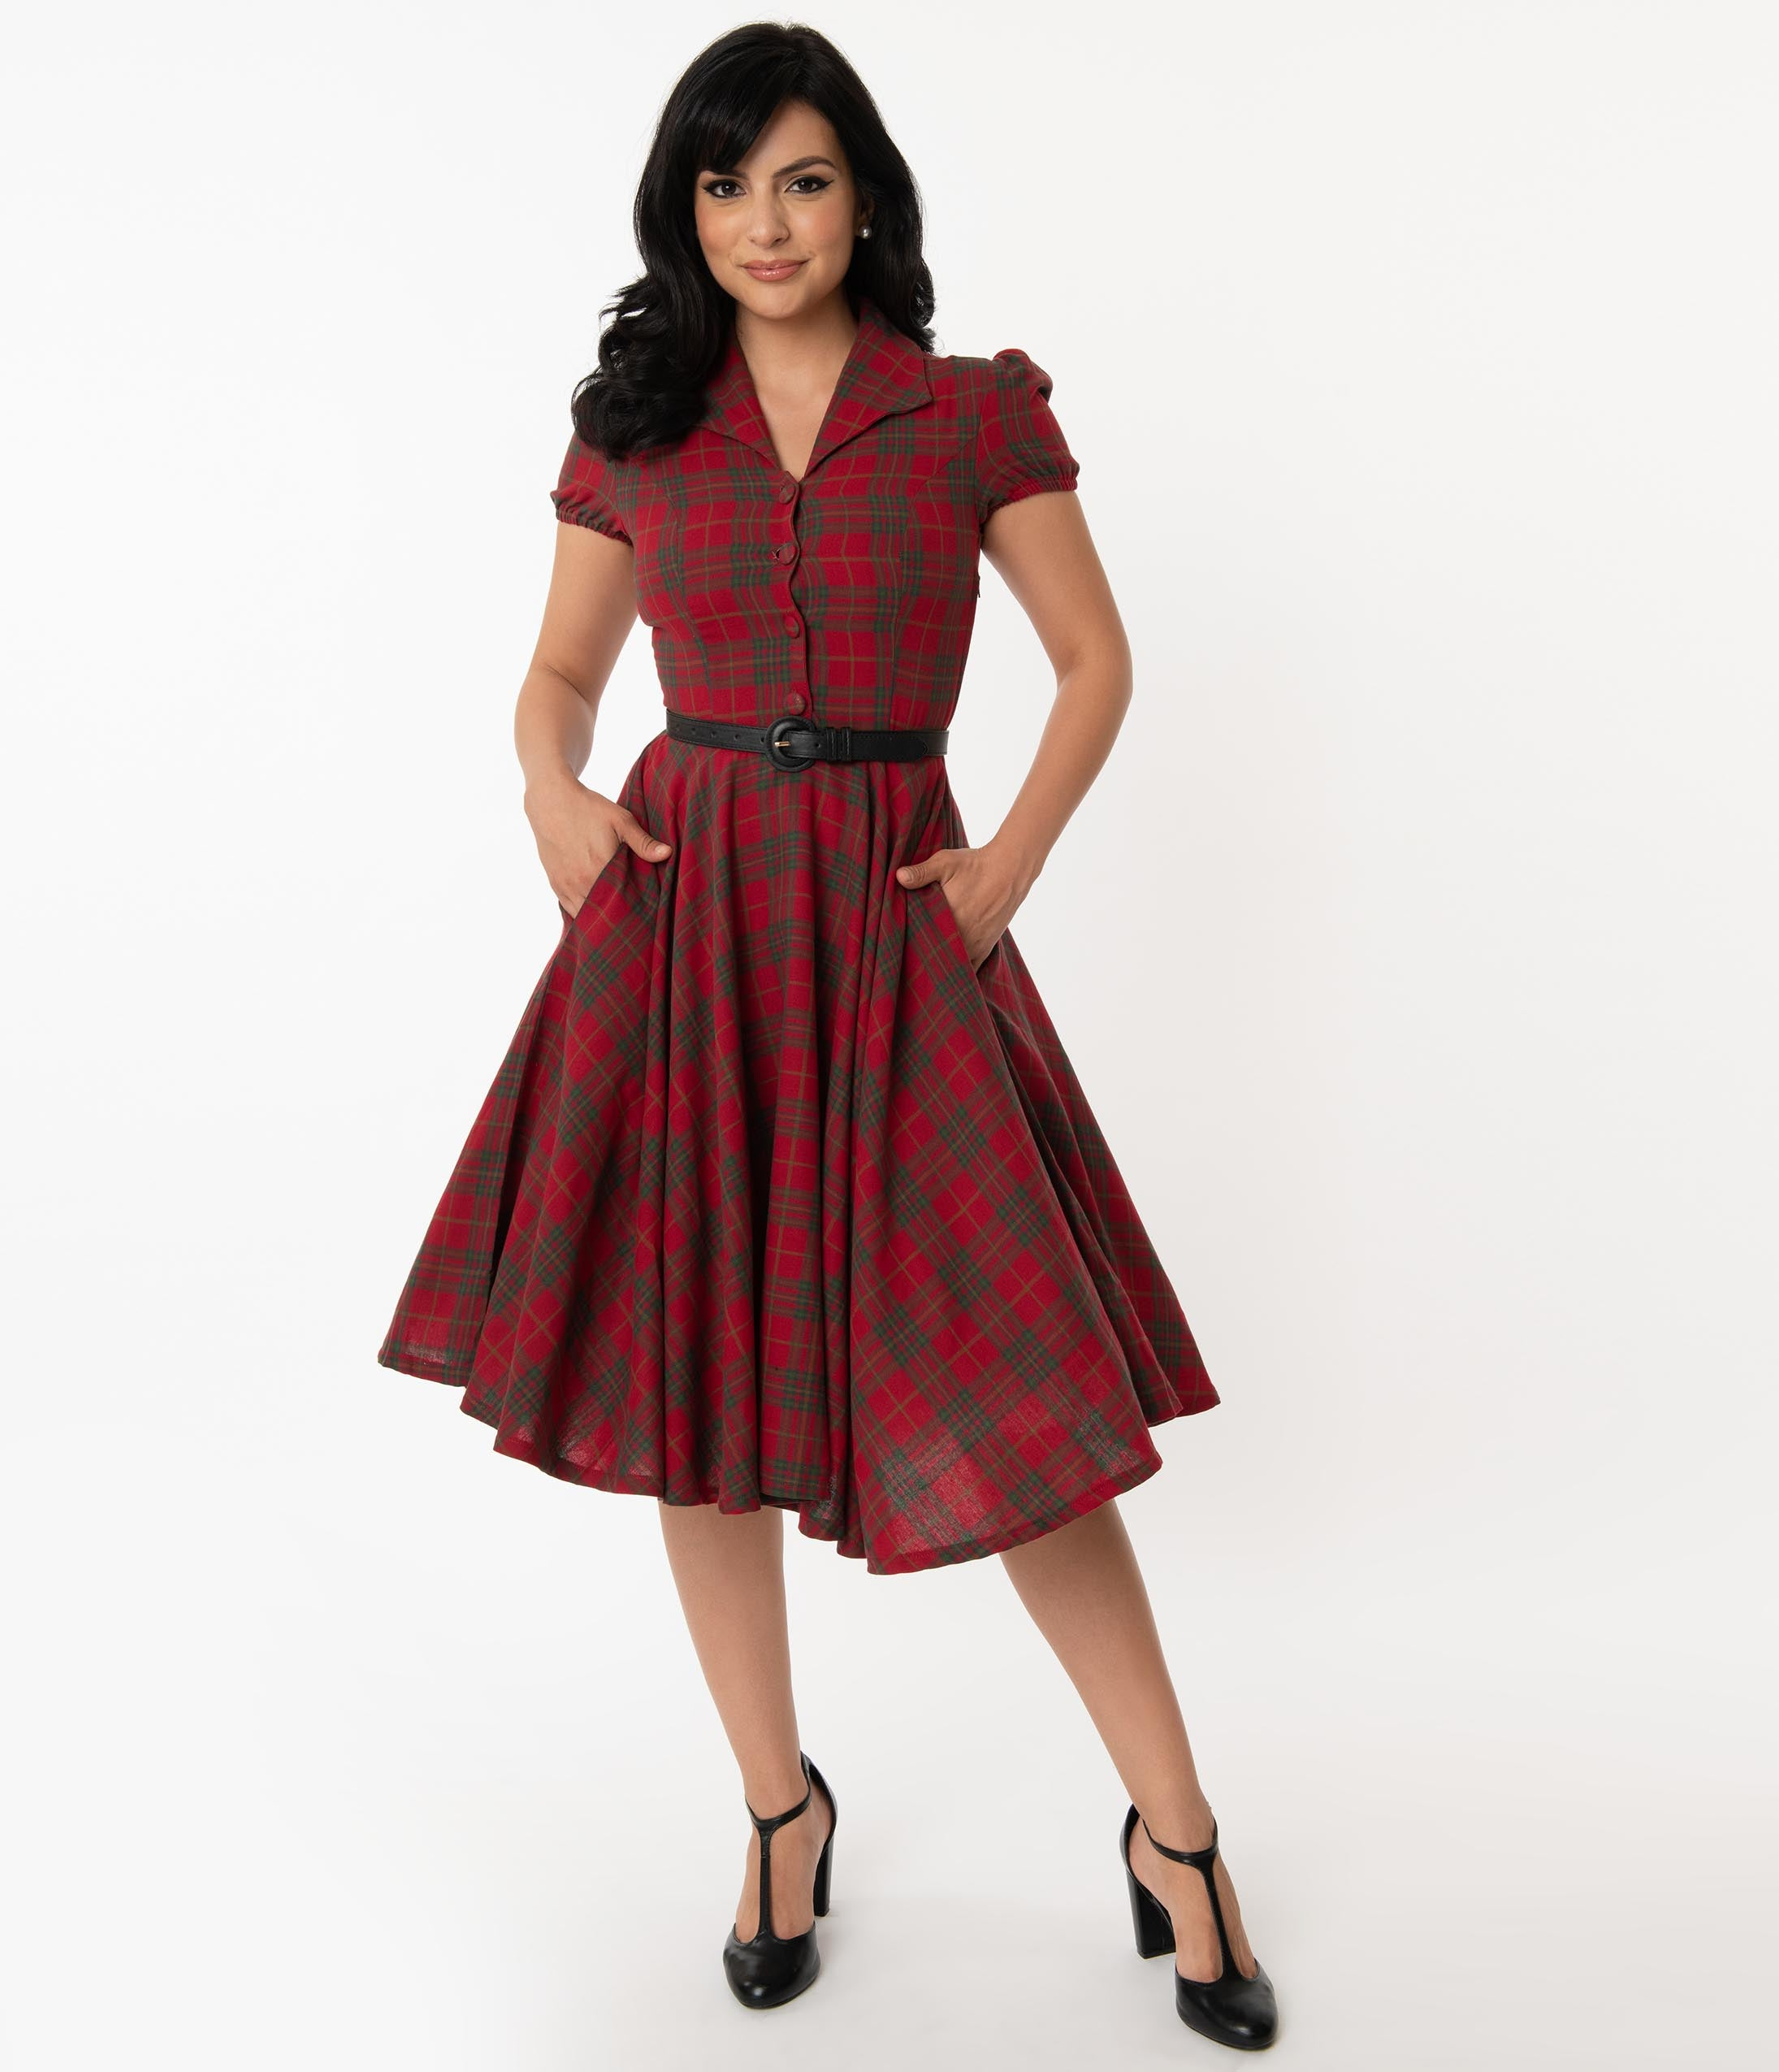 Vintage Red Dresses | Valentines Day Dresses, Outfits, Lingerie 1950S Style Red  Green Plaid Mona Swing Dress $88.00 AT vintagedancer.com